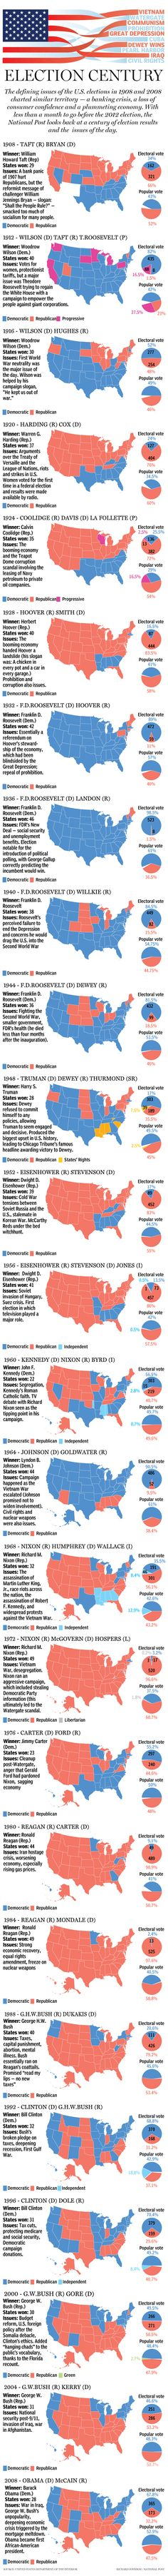 Map: U.S. Elections from the past 100 years